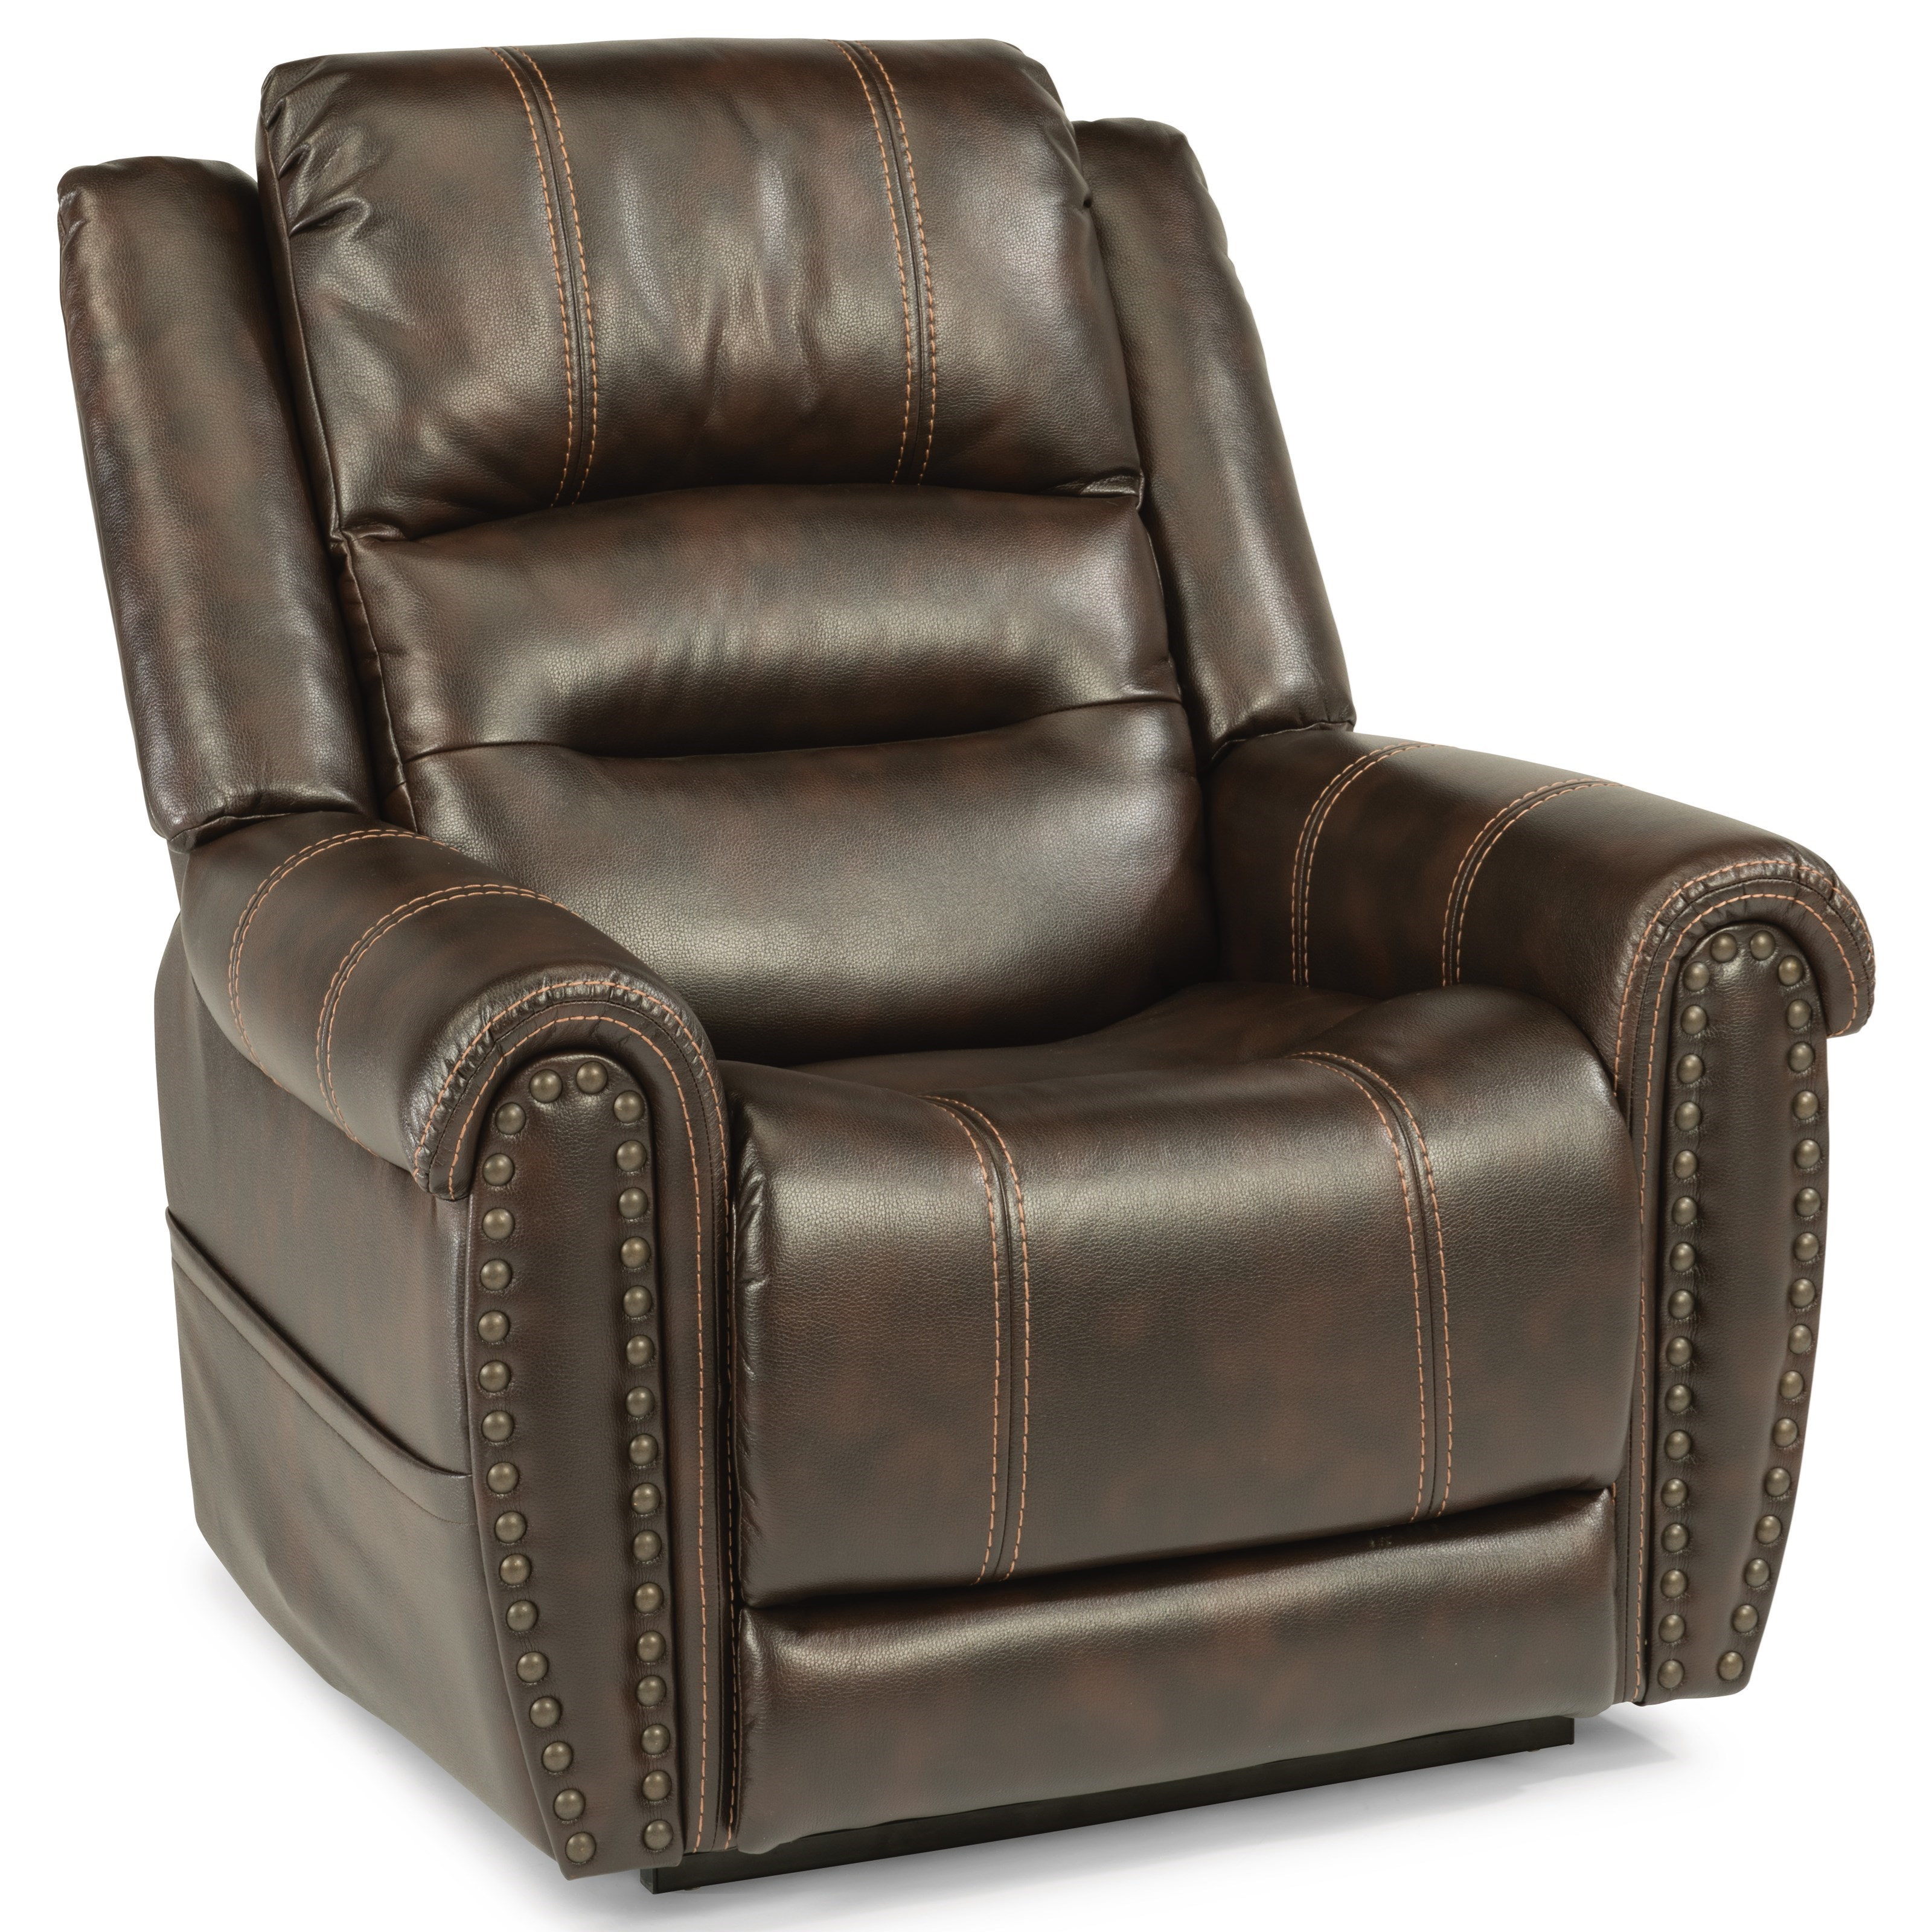 Latitudes - Oscar Power Lift Recliner by Flexsteel at Ruby Gordon Home